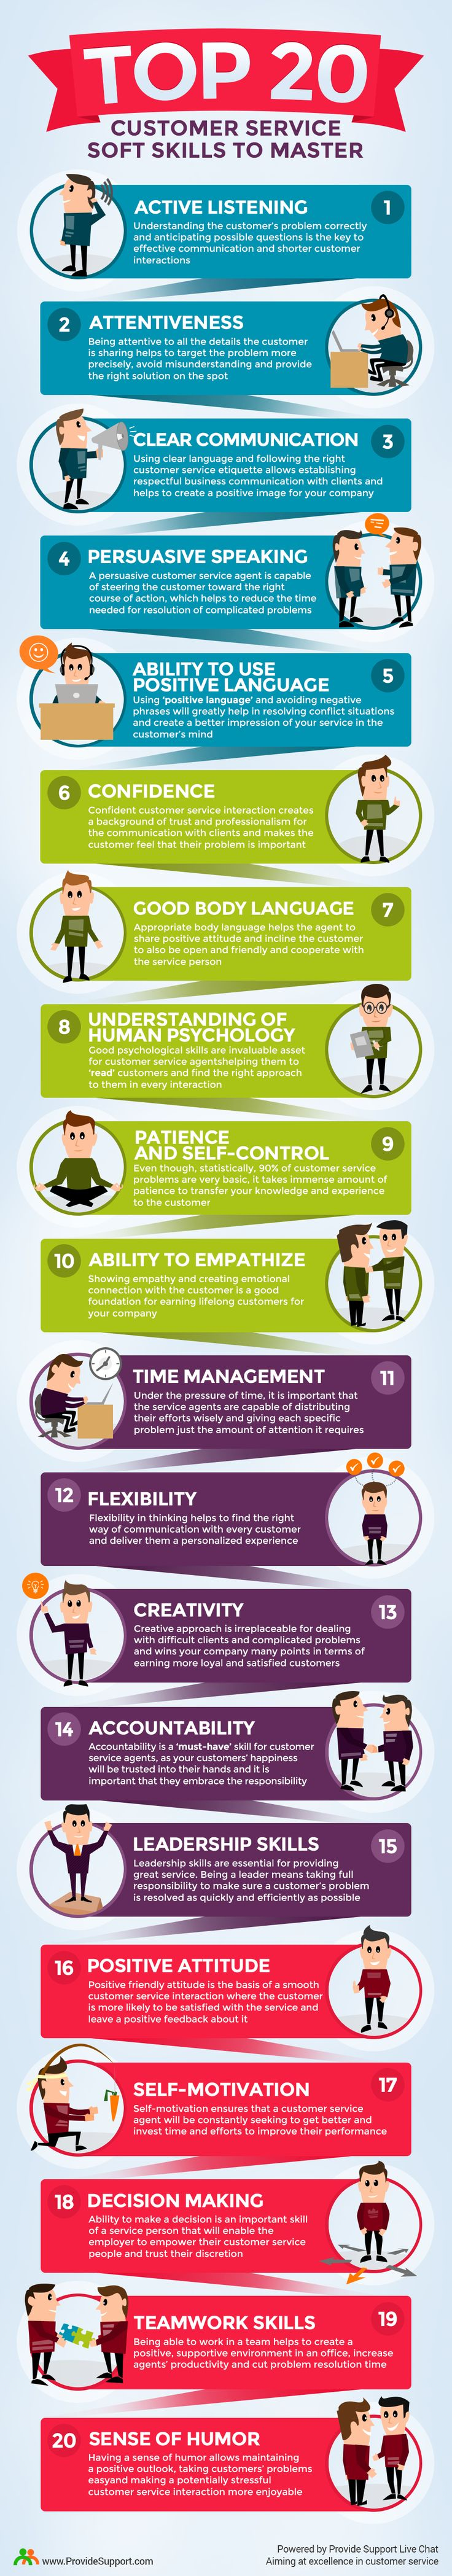 Top 20 Customer Service Soft Skills To Master  Customer Service Skills List